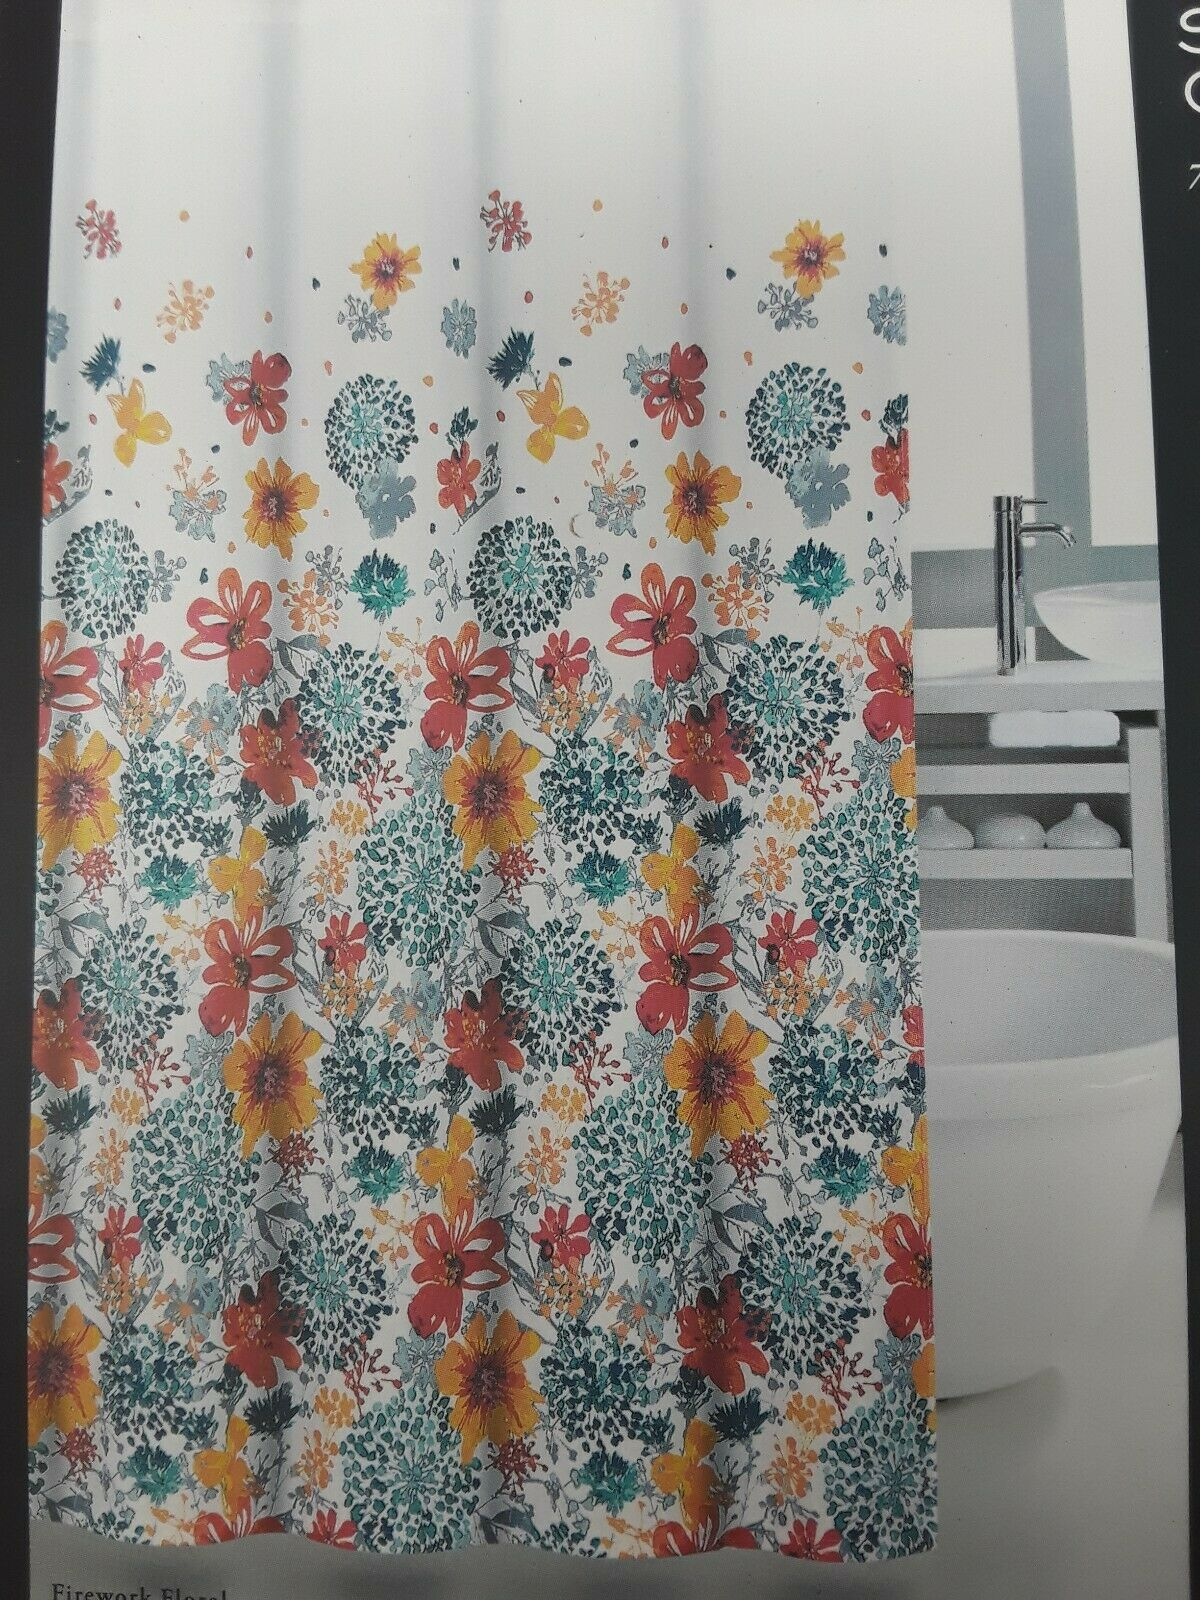 Nicole Miller Fireworks Floral Fabric Shower Curtain Coral Green Flowers New